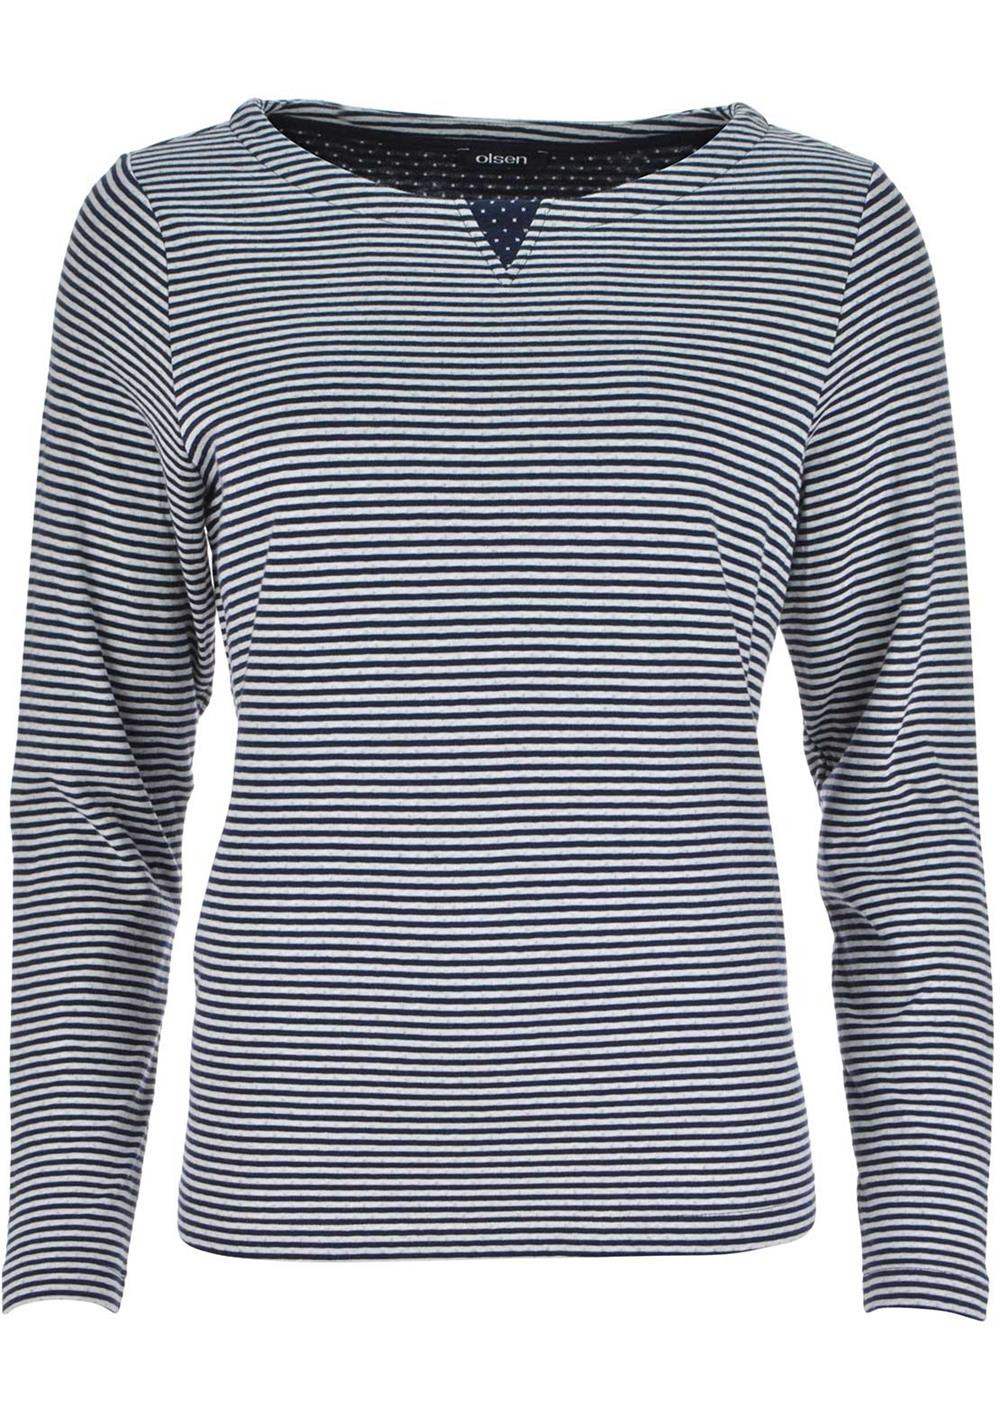 Olsen Striped Long Sleeve Sweatshirt Jumper, Navy And White